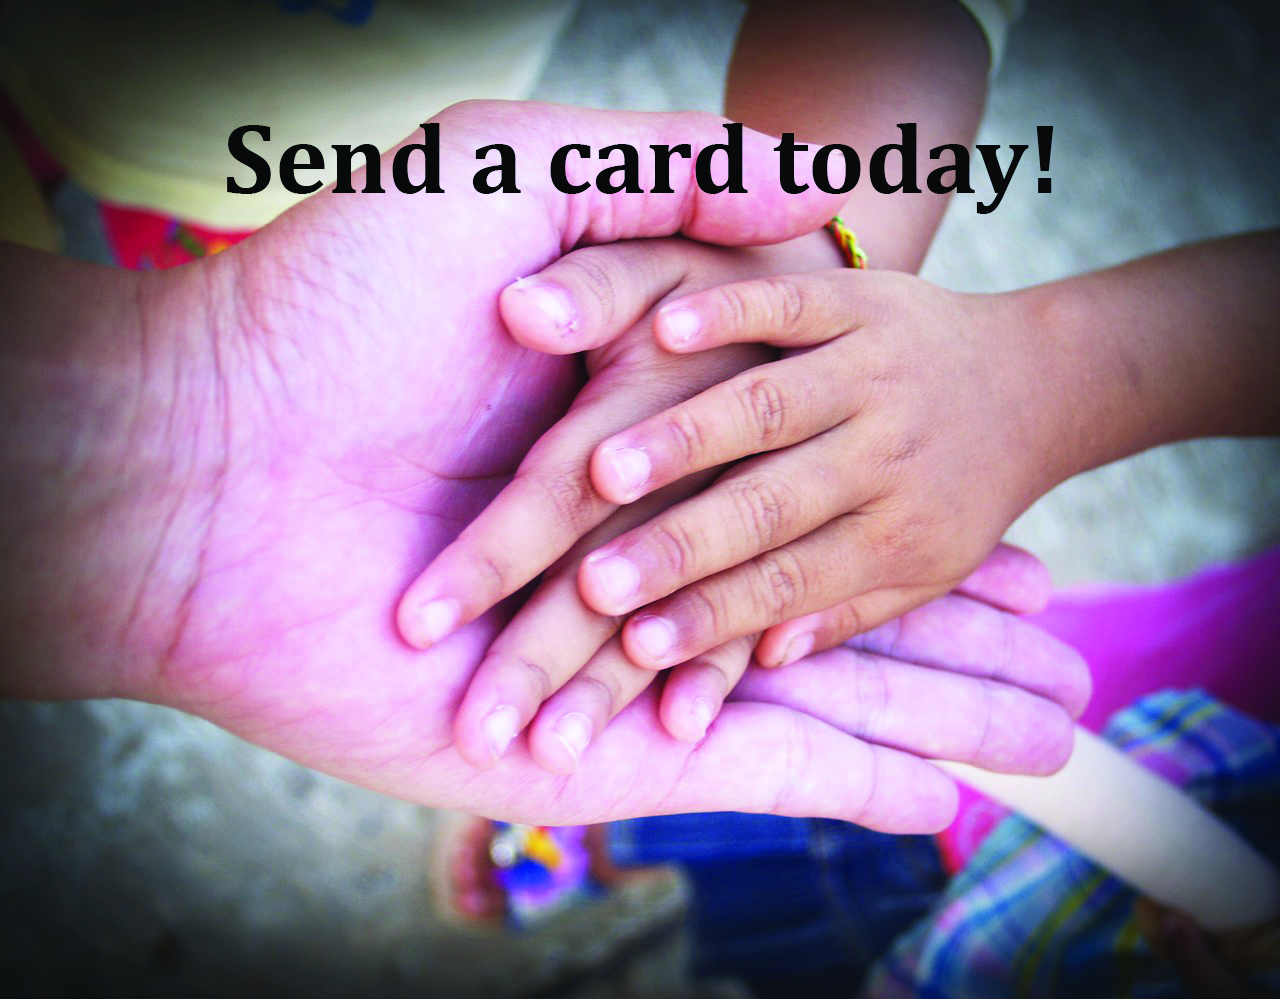 a.send-a-card-hands-pna-lp-2.jpg